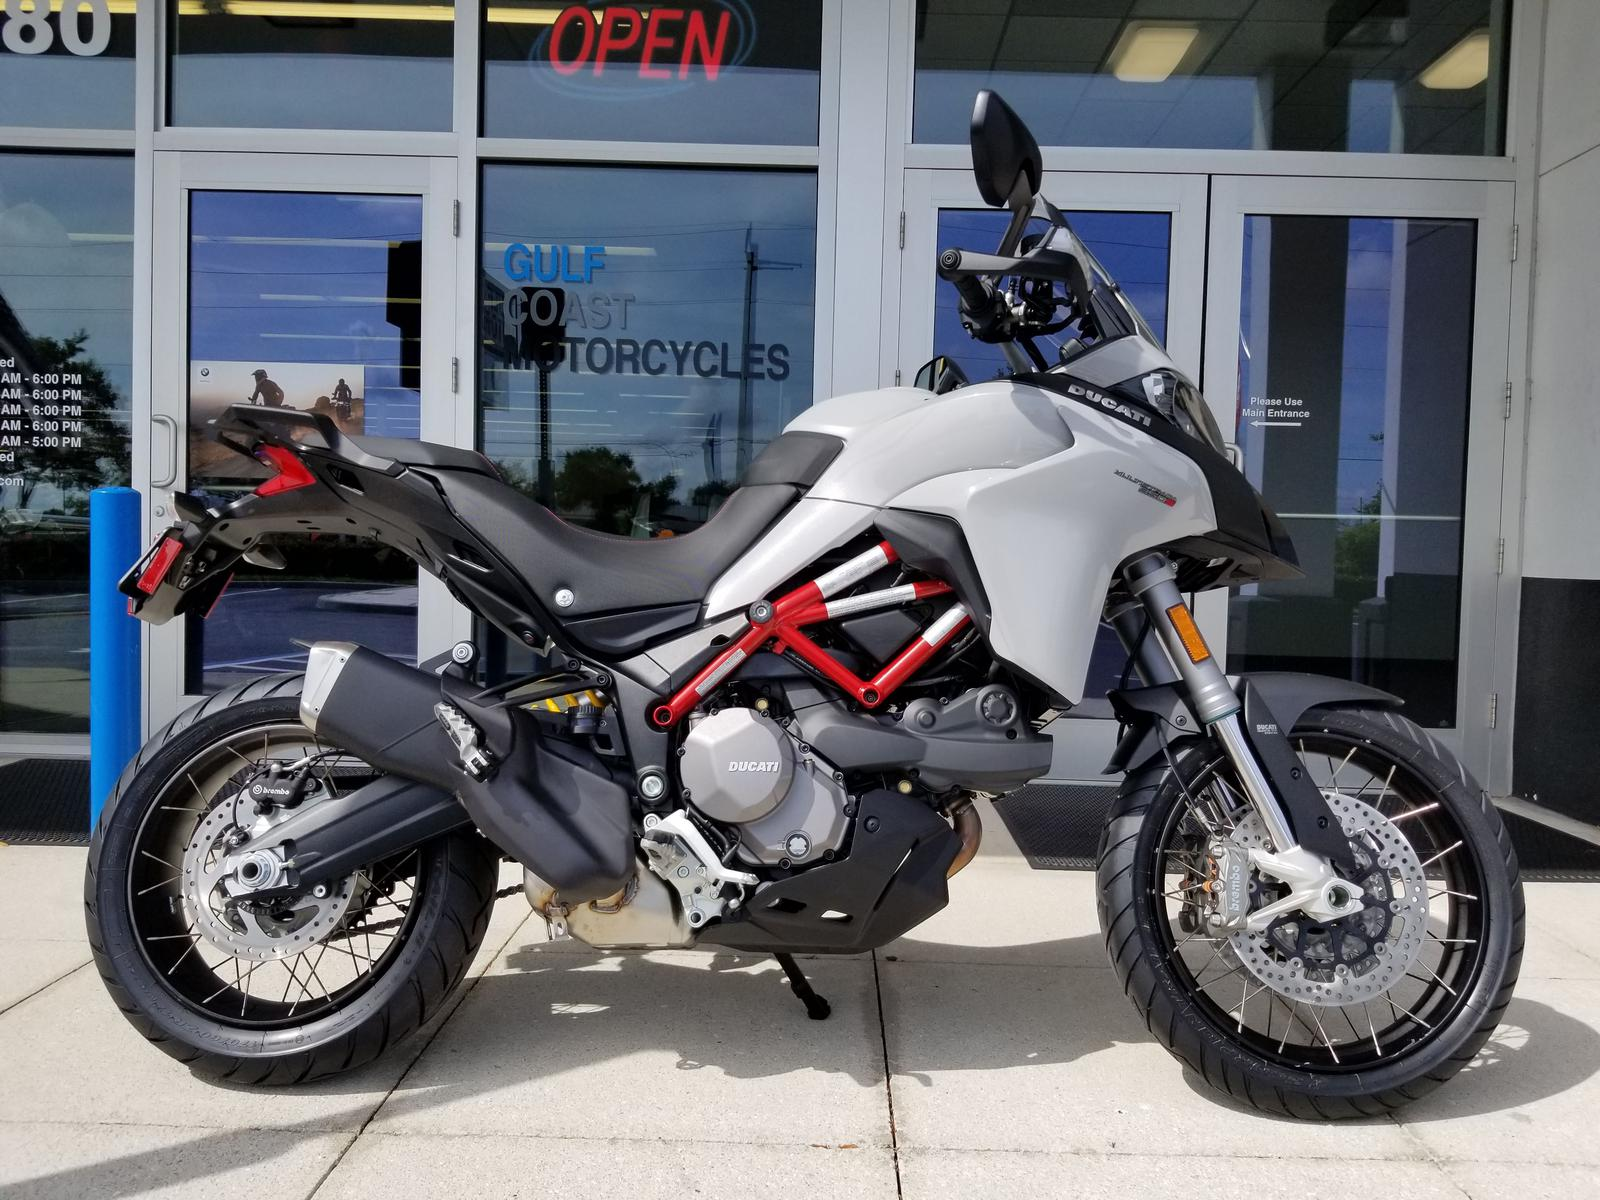 Phenomenal 2019 Ducati Multistrada 950 S Spoked Wheels Glossy Grey Caraccident5 Cool Chair Designs And Ideas Caraccident5Info